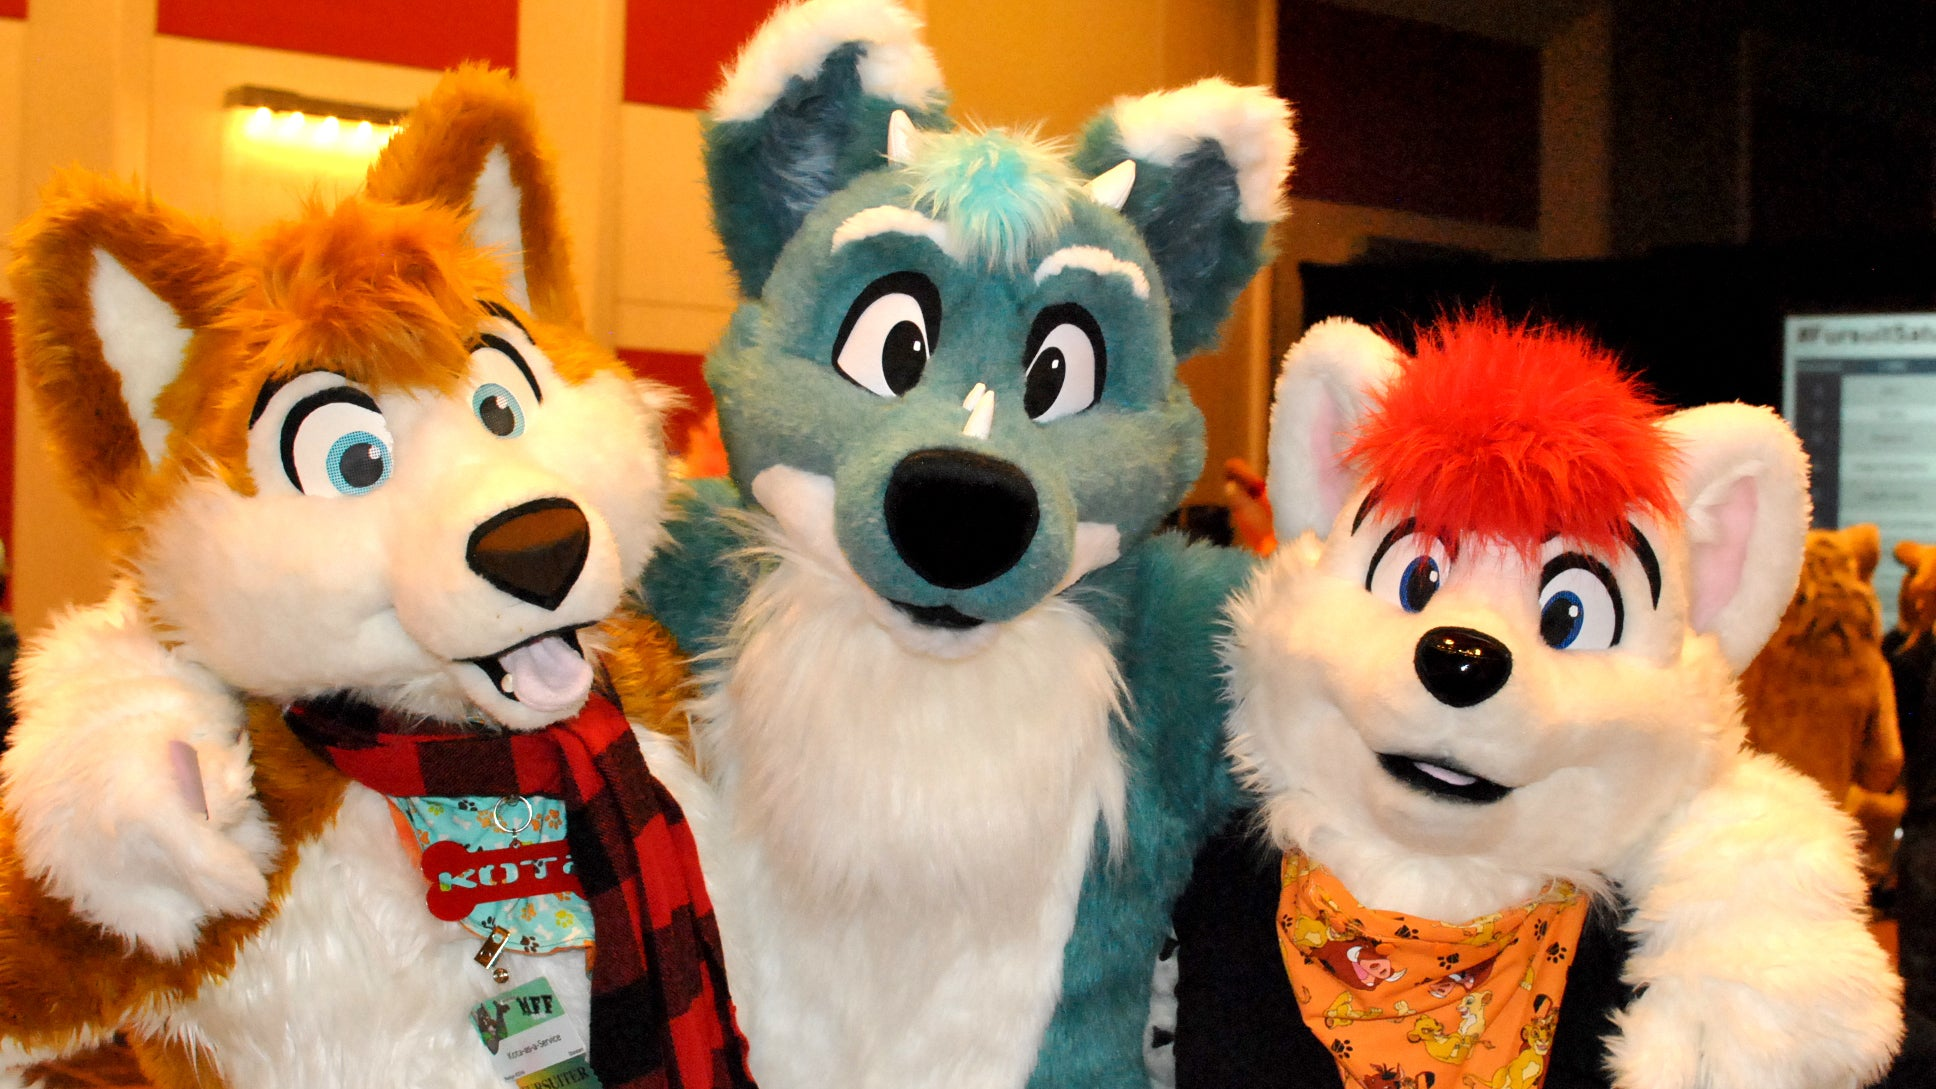 All Hotel Guests Should Behave Like These Furries